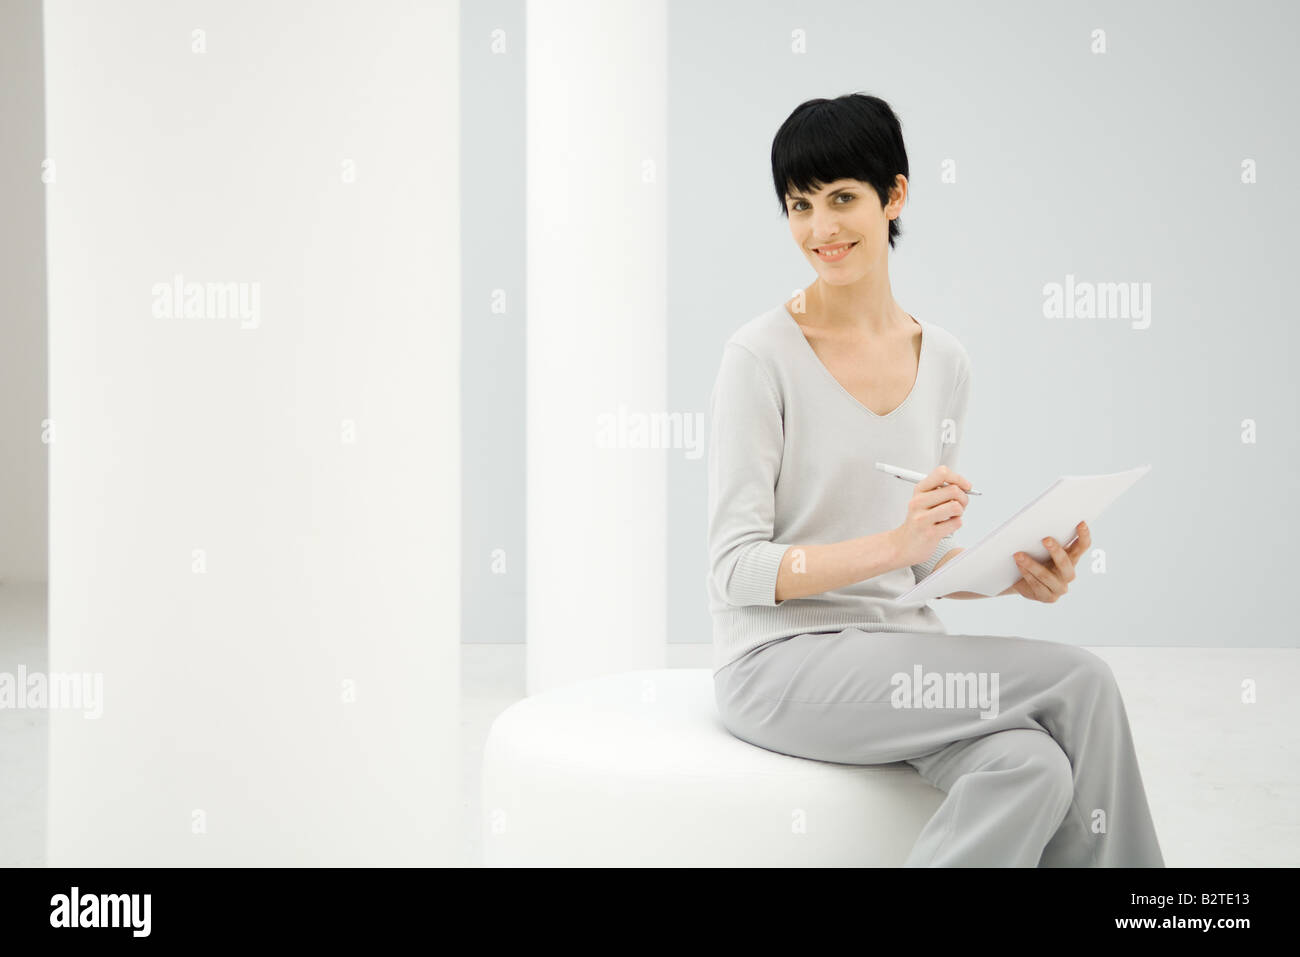 Woman sitting, holding notepad and pen, smiling at camera - Stock Image